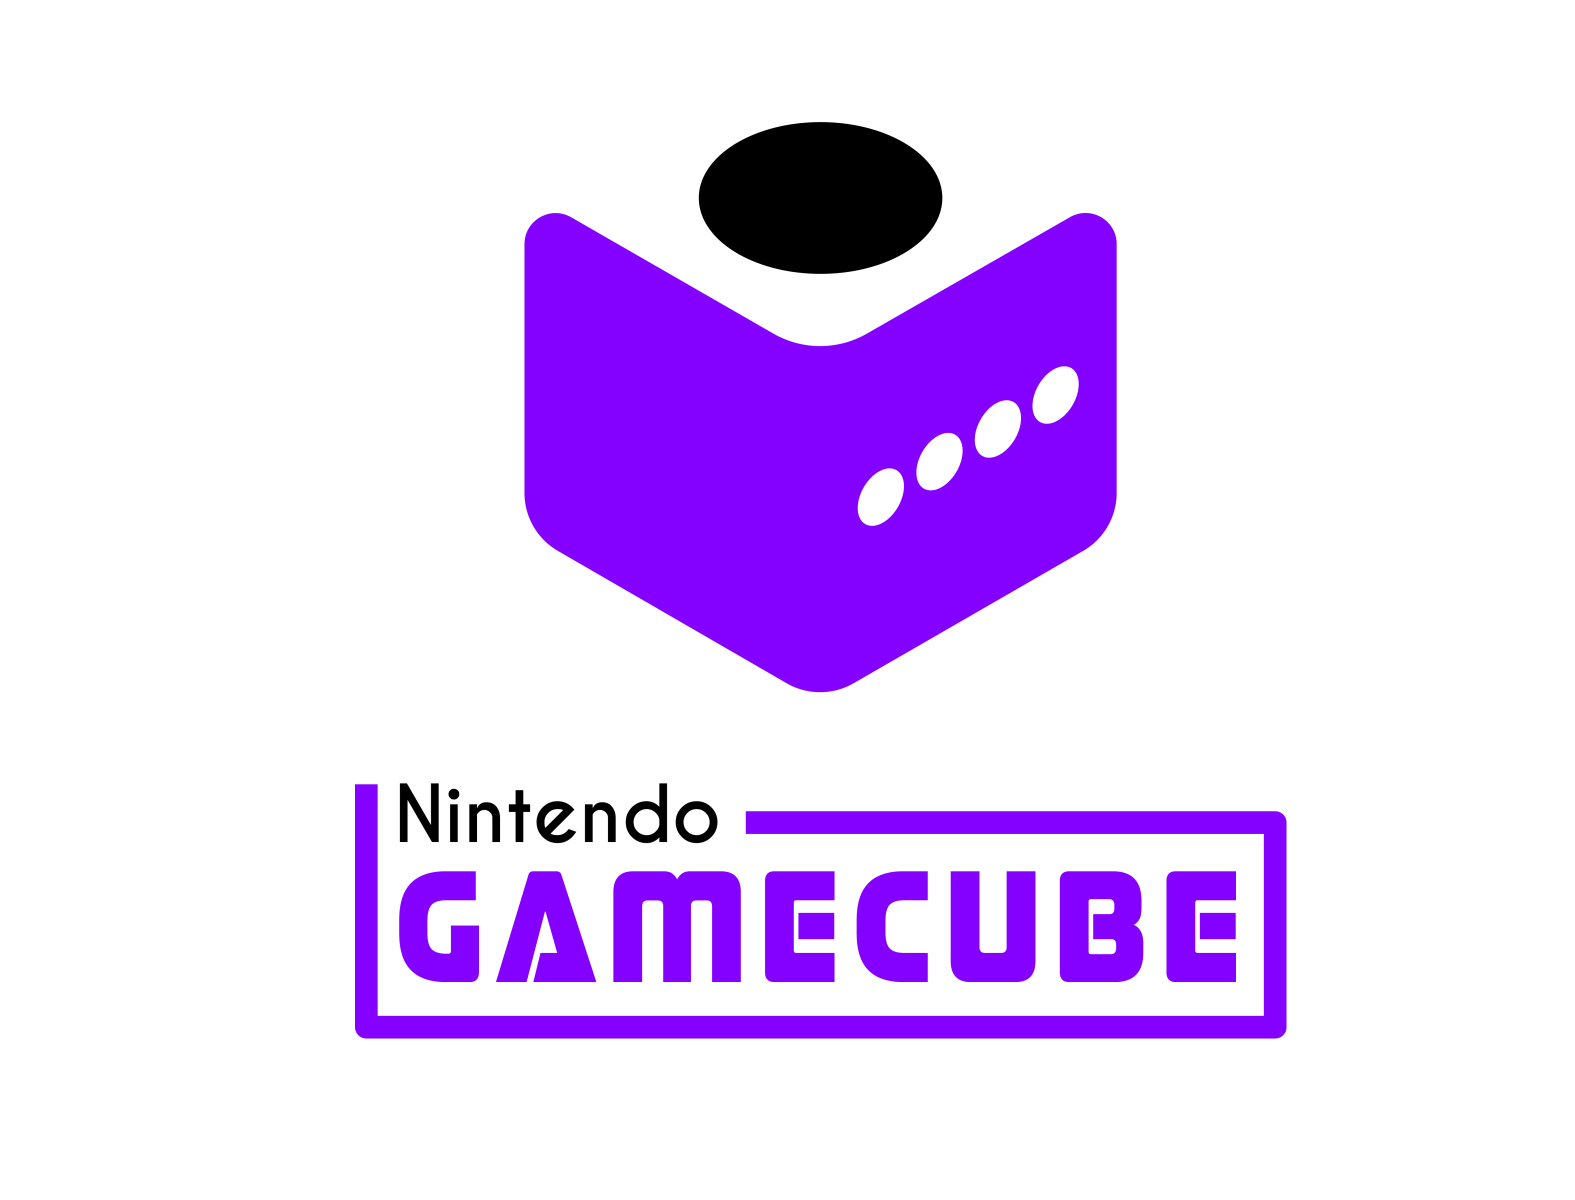 Nintendo Gamecube Rebrand In 2020 Rebranding Gamecube Job Board